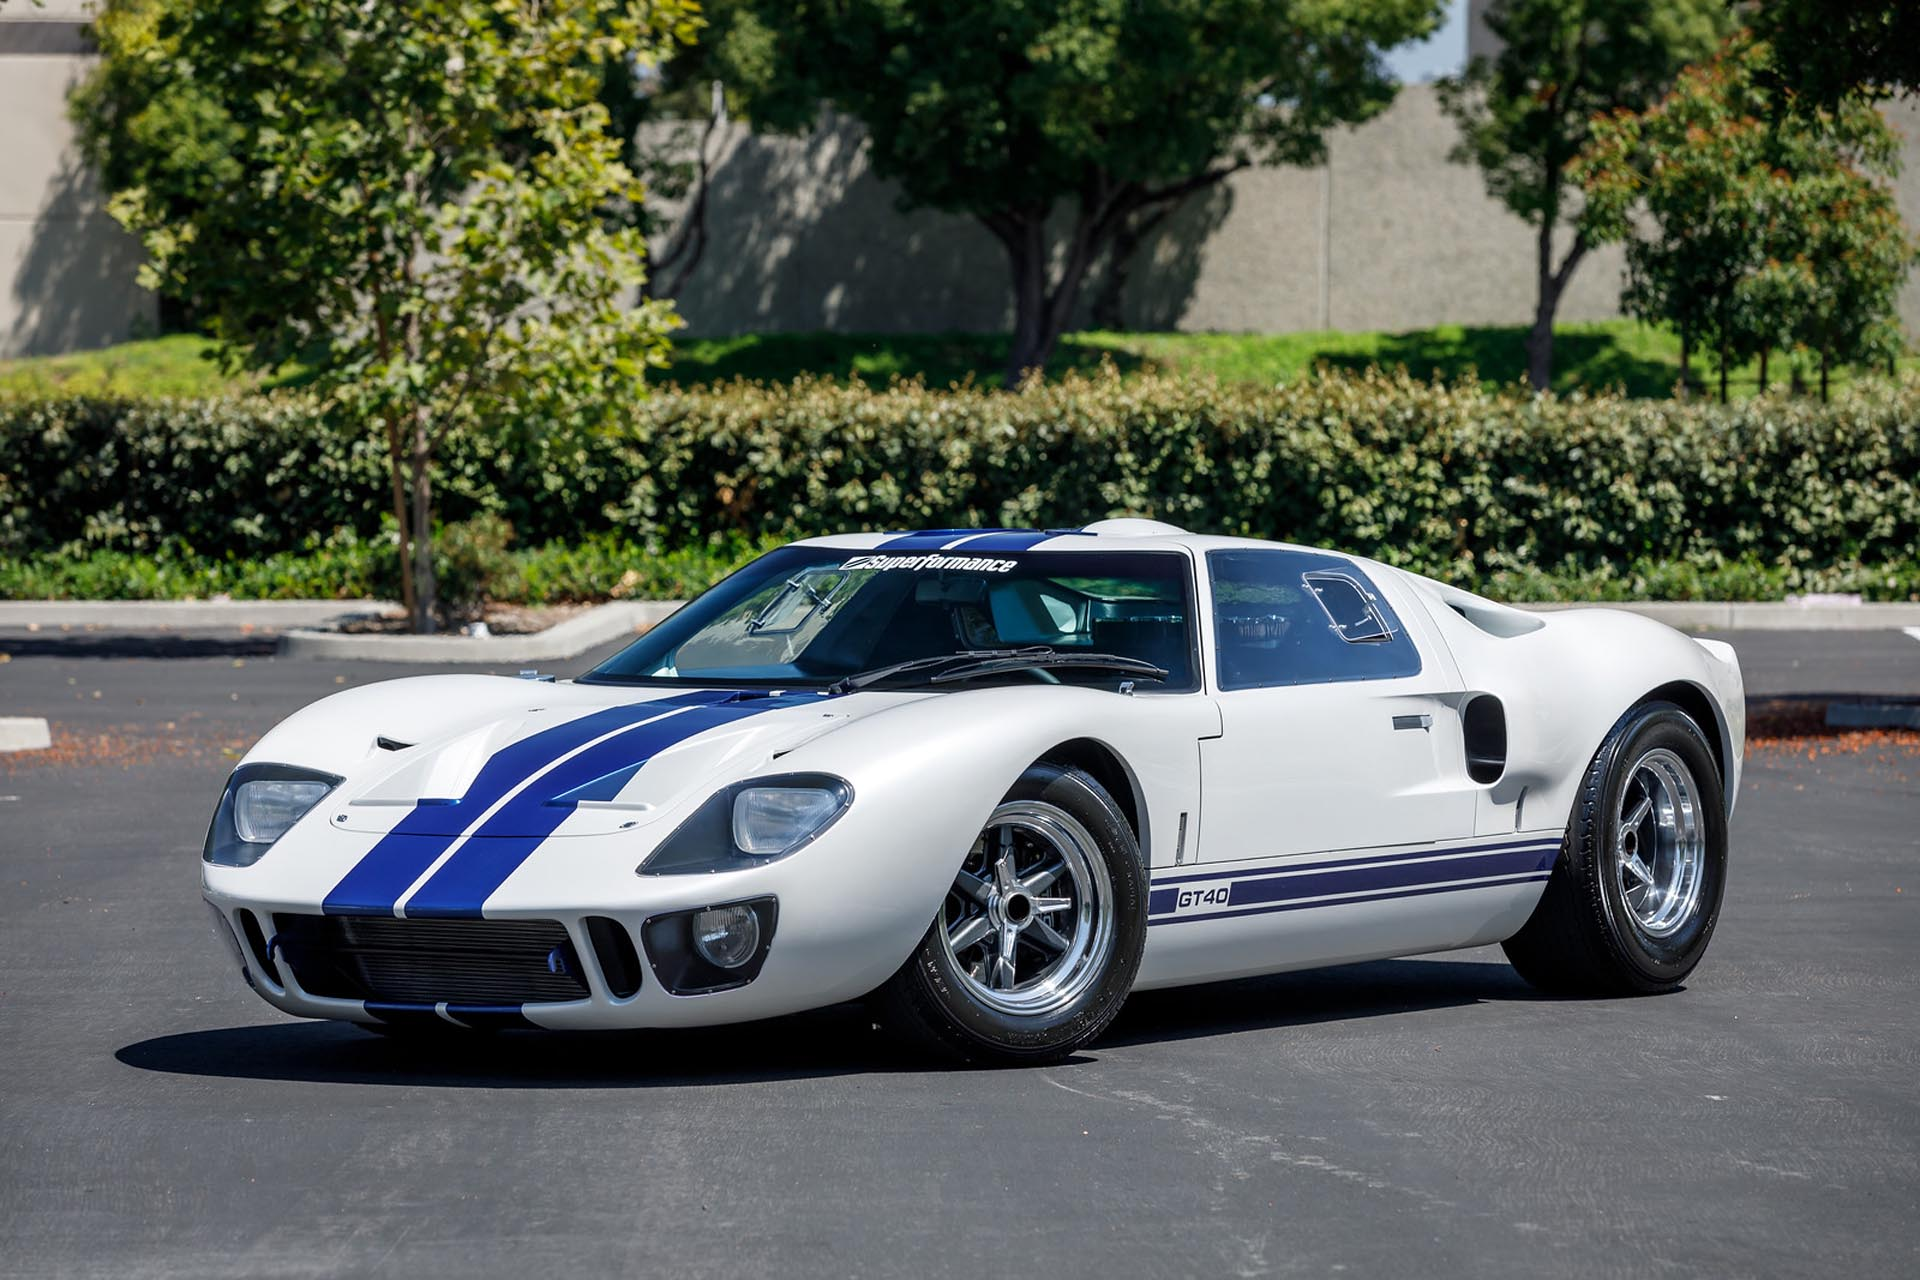 1965 Superformance GT40 MK I